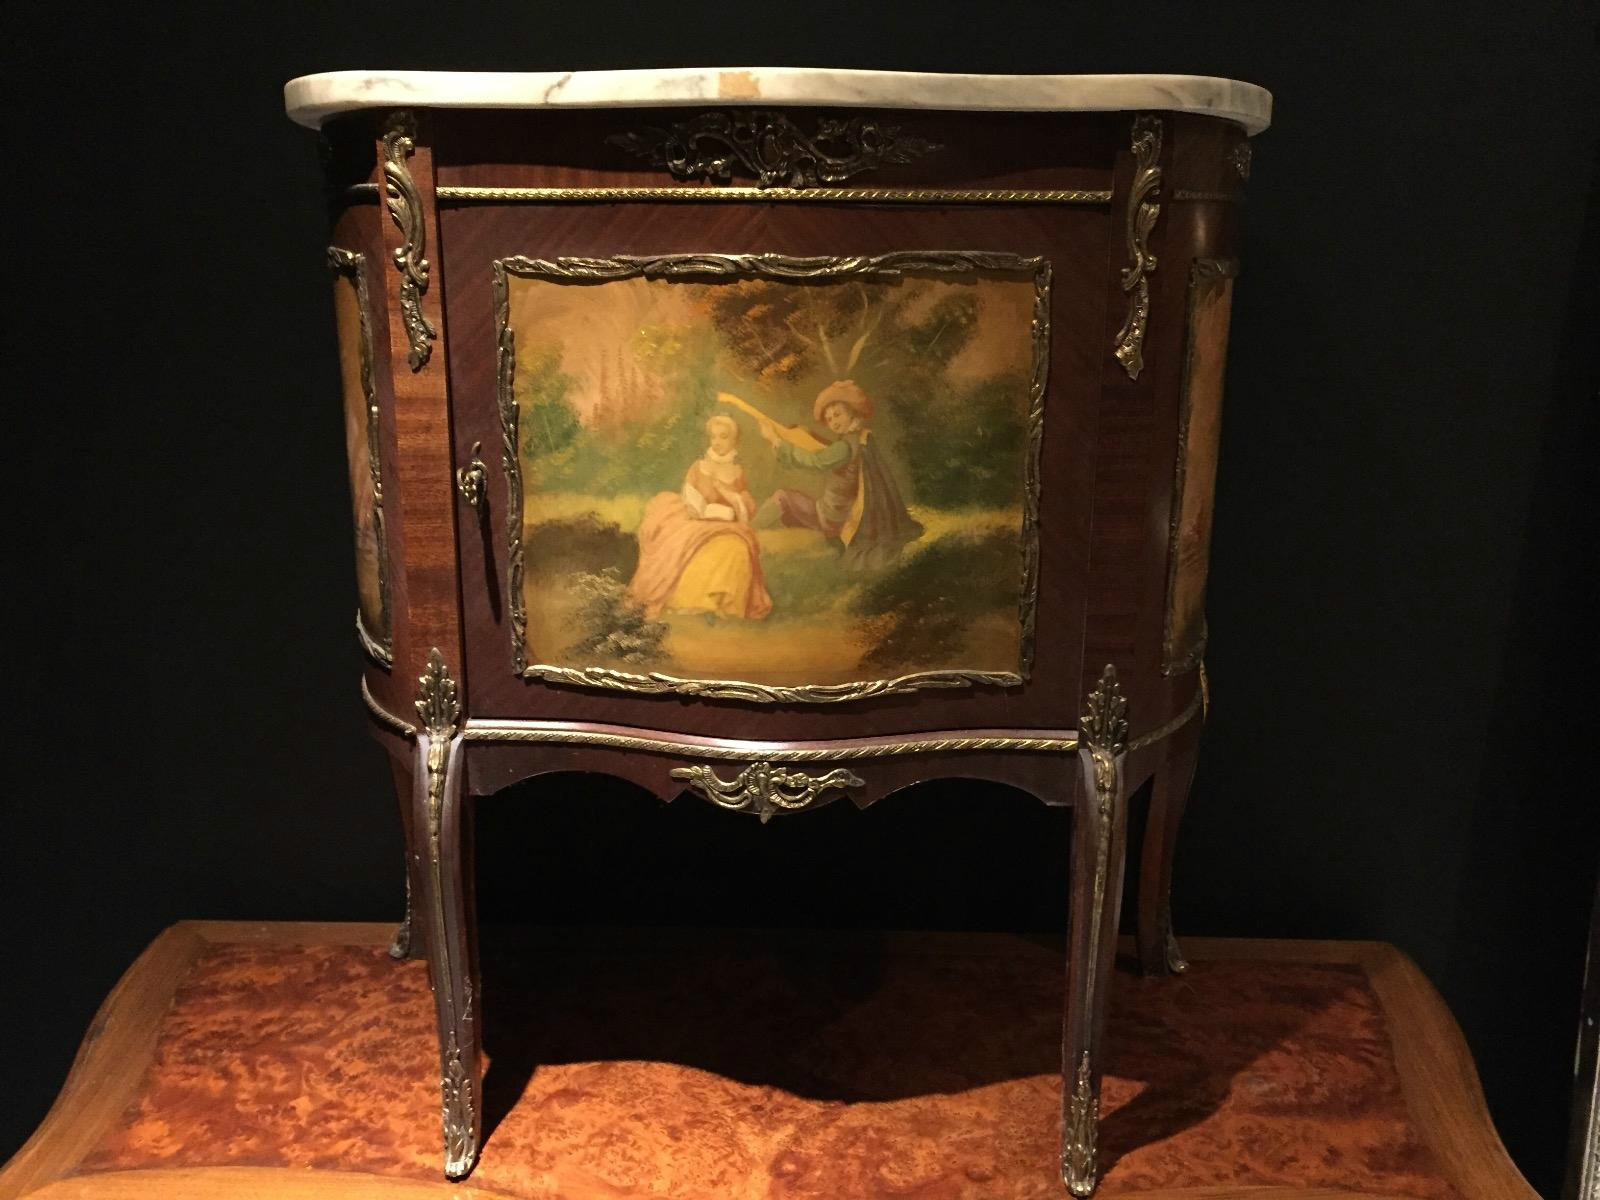 Antique Vernis Martin Small Marble Top Cabinet Antiques Furnitures Recent Added Items European Antiques Decorative